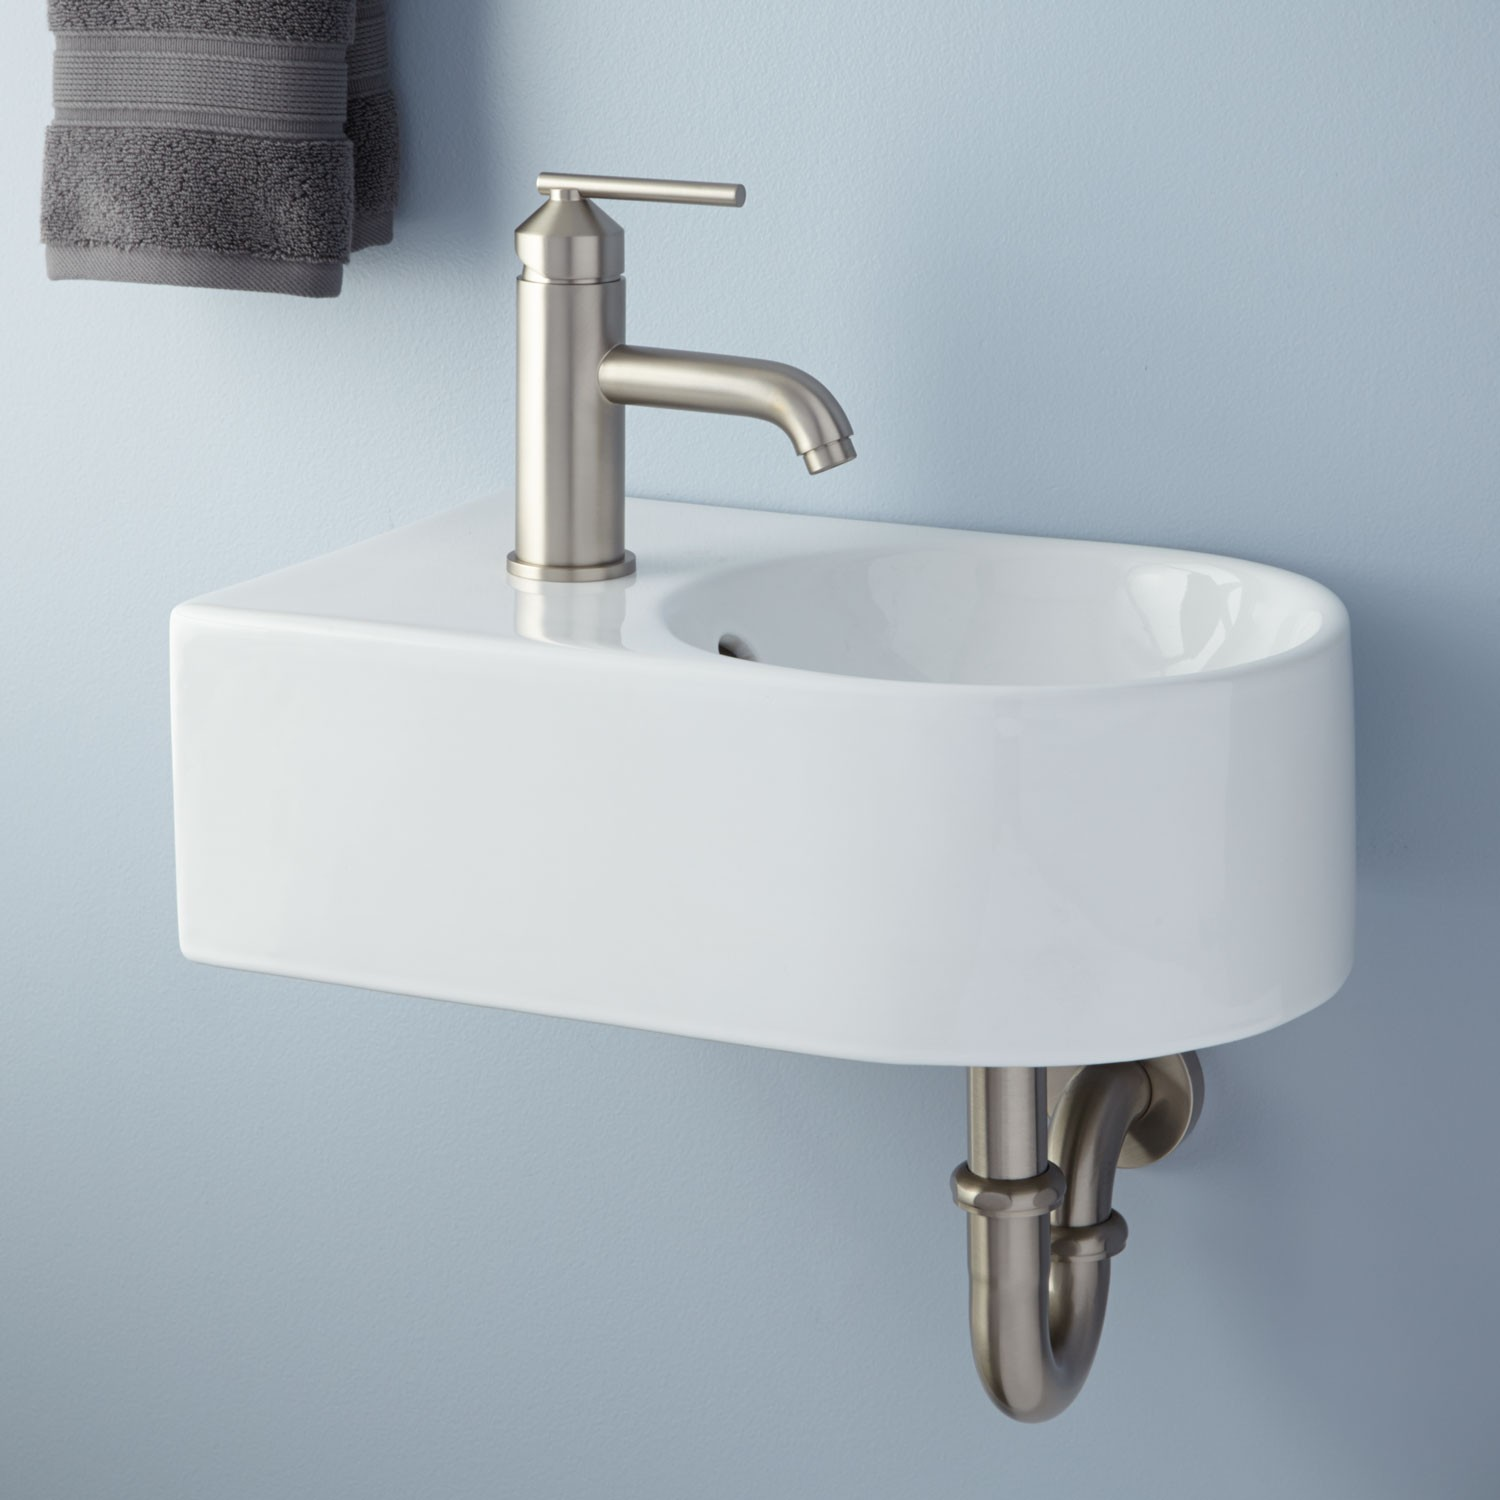 Small Wall Mounted Sink A Good Choice for Space